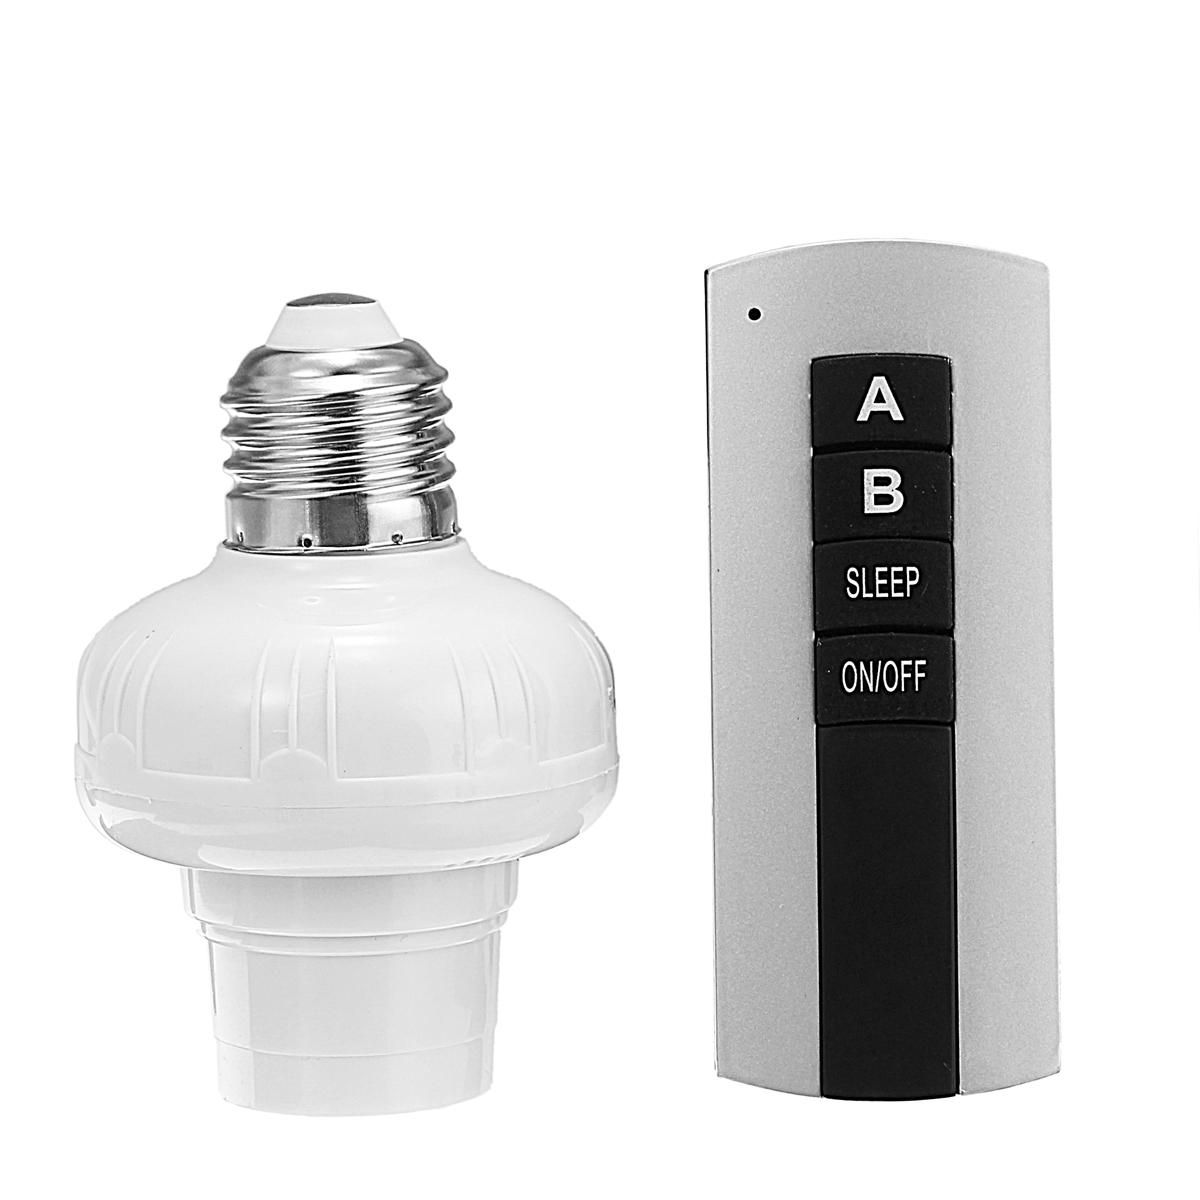 E27 Screw Wireless Remote Control Switch Lamp Holder Bulb Adapter Cap Socket Ac185 265v Lighting Accessories From Lights Lighting On Banggood Com Bulb Adapter Lamp Holder Remote Control